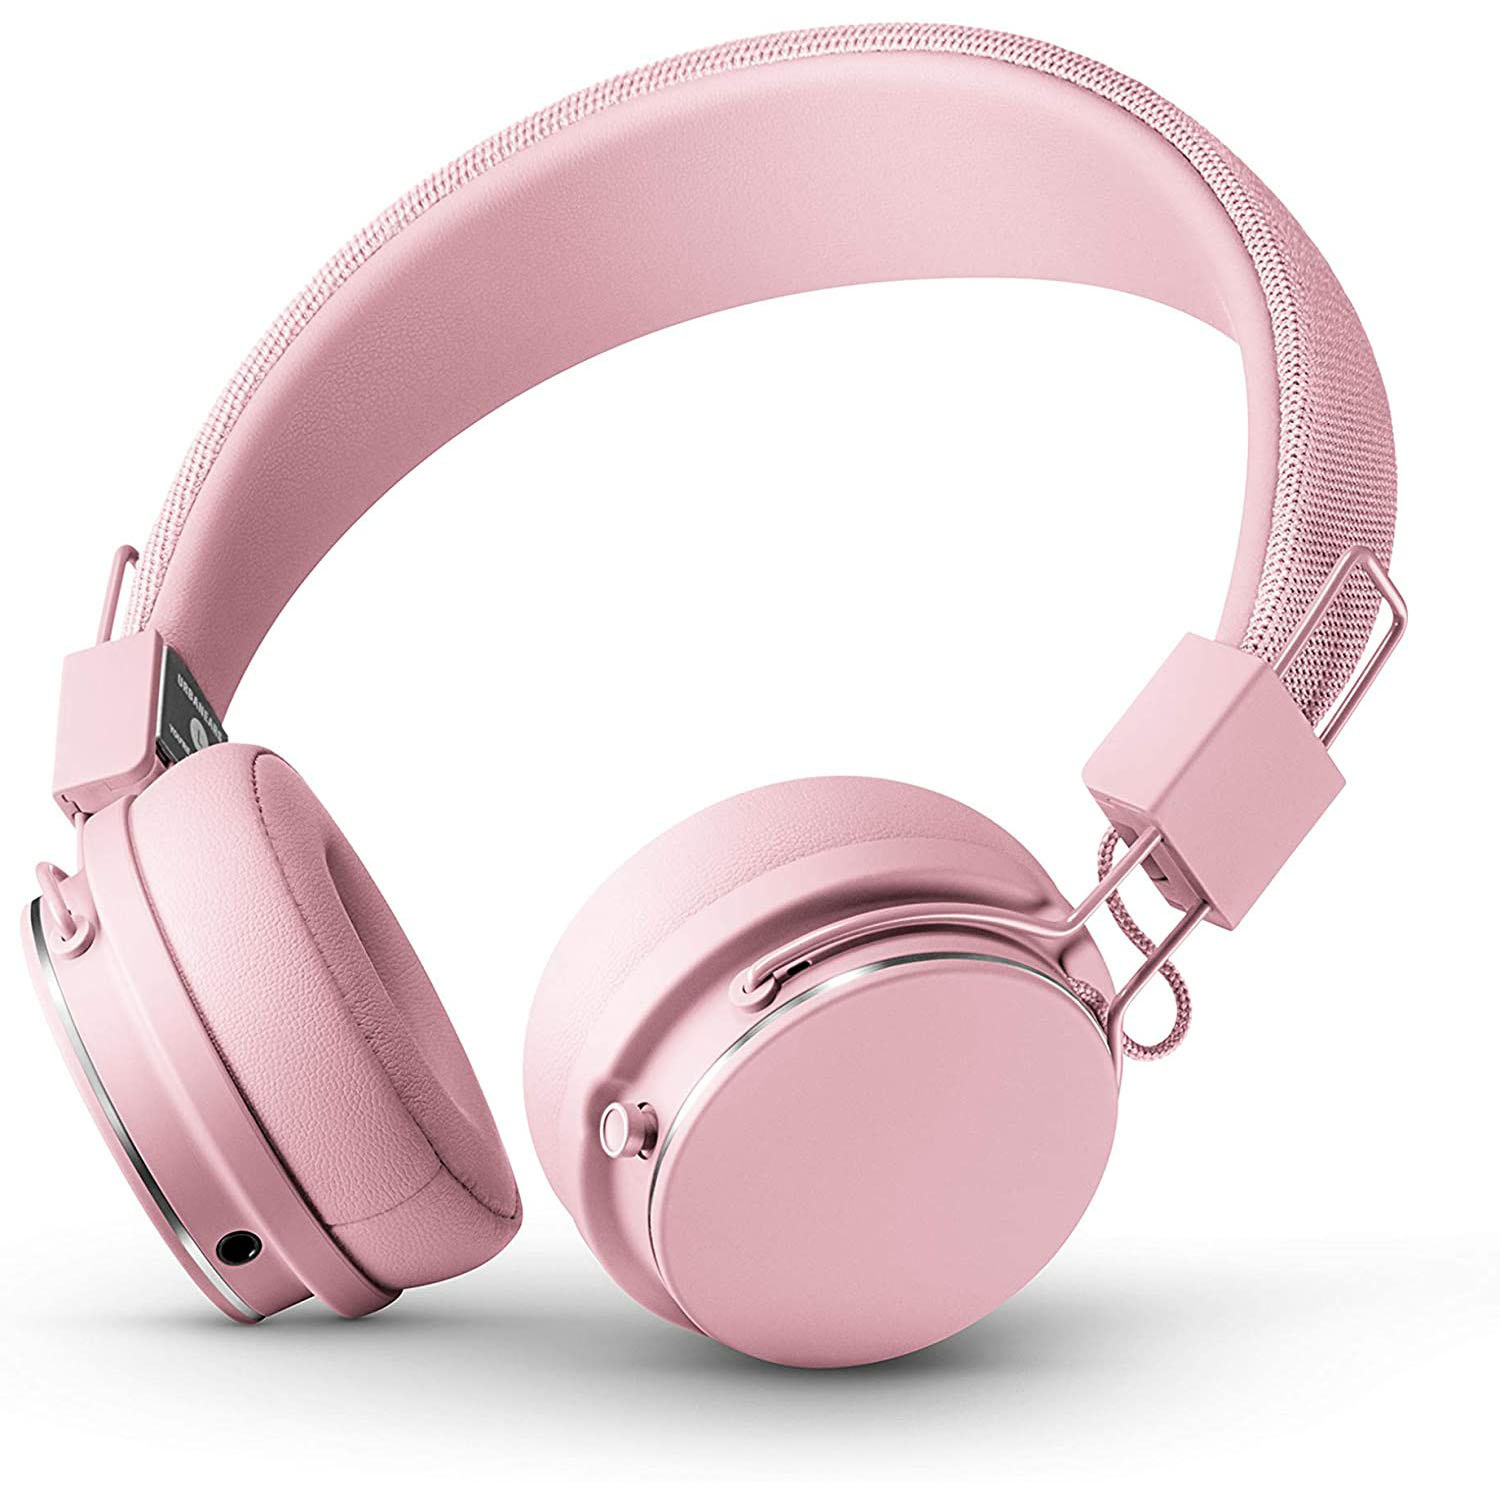 Urbanears Plattan 2 Bluetooth Powder Pink | 30+ Hours Playtime